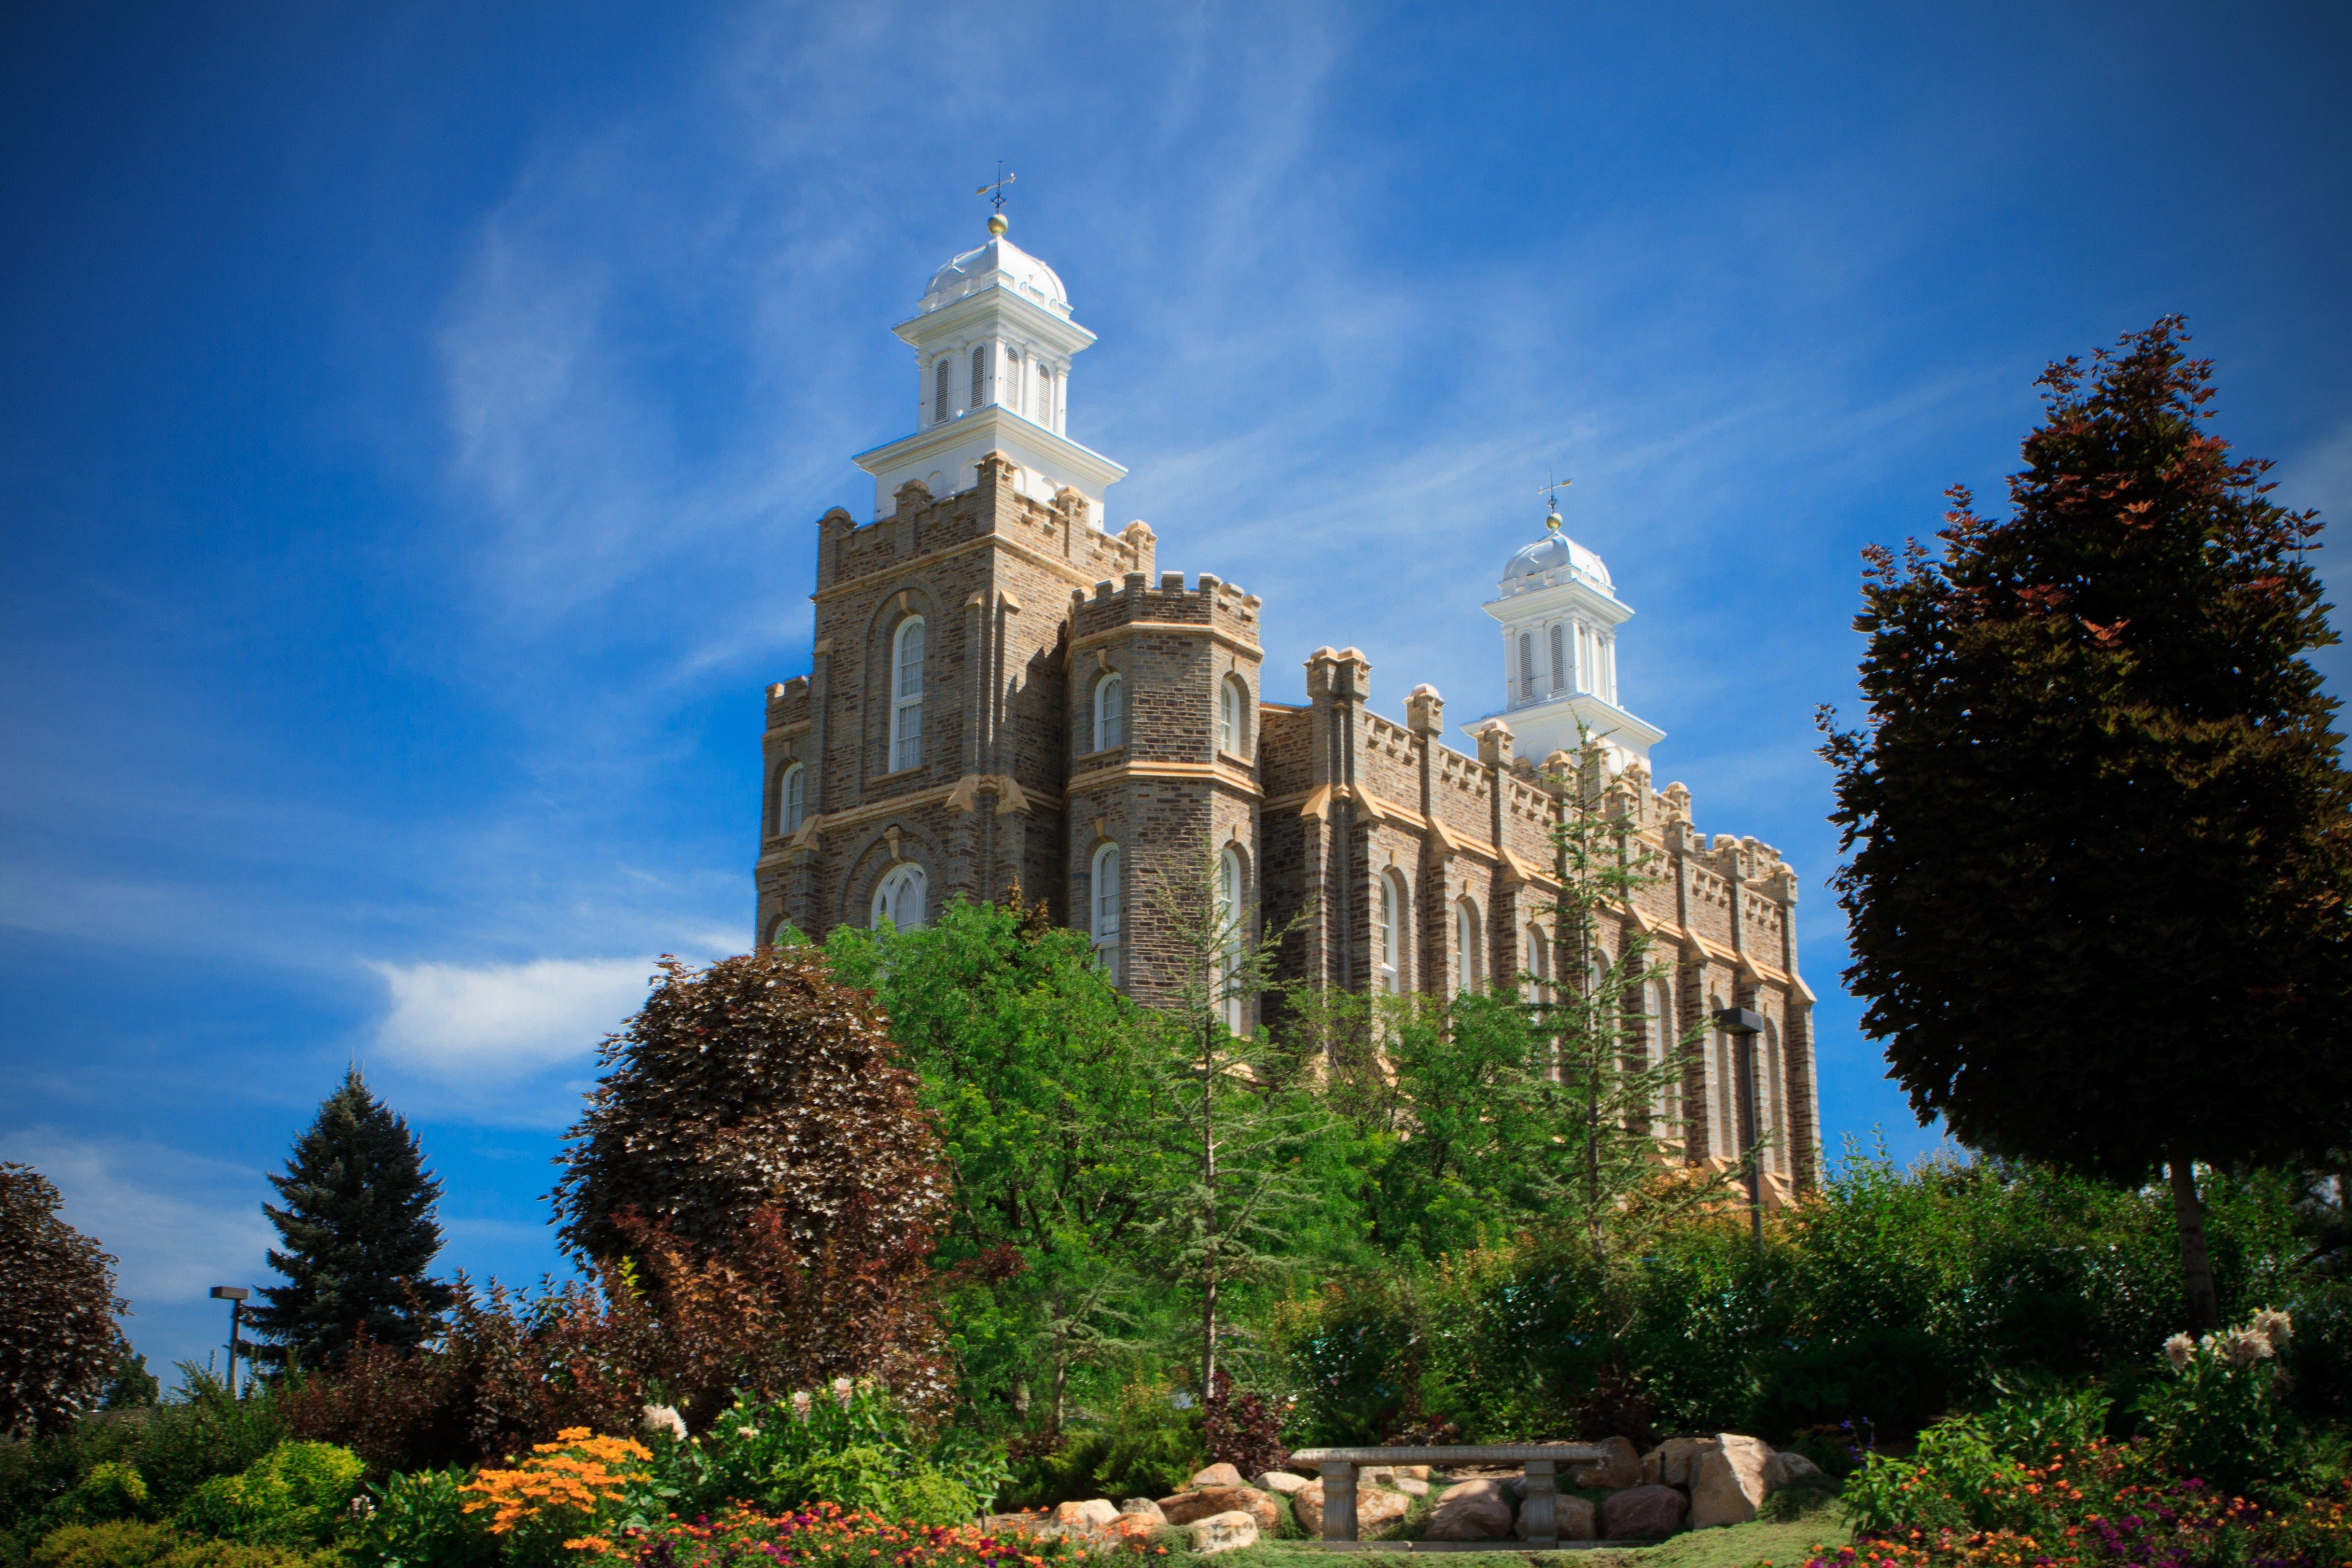 The entire Logan Utah Temple, including scenery.